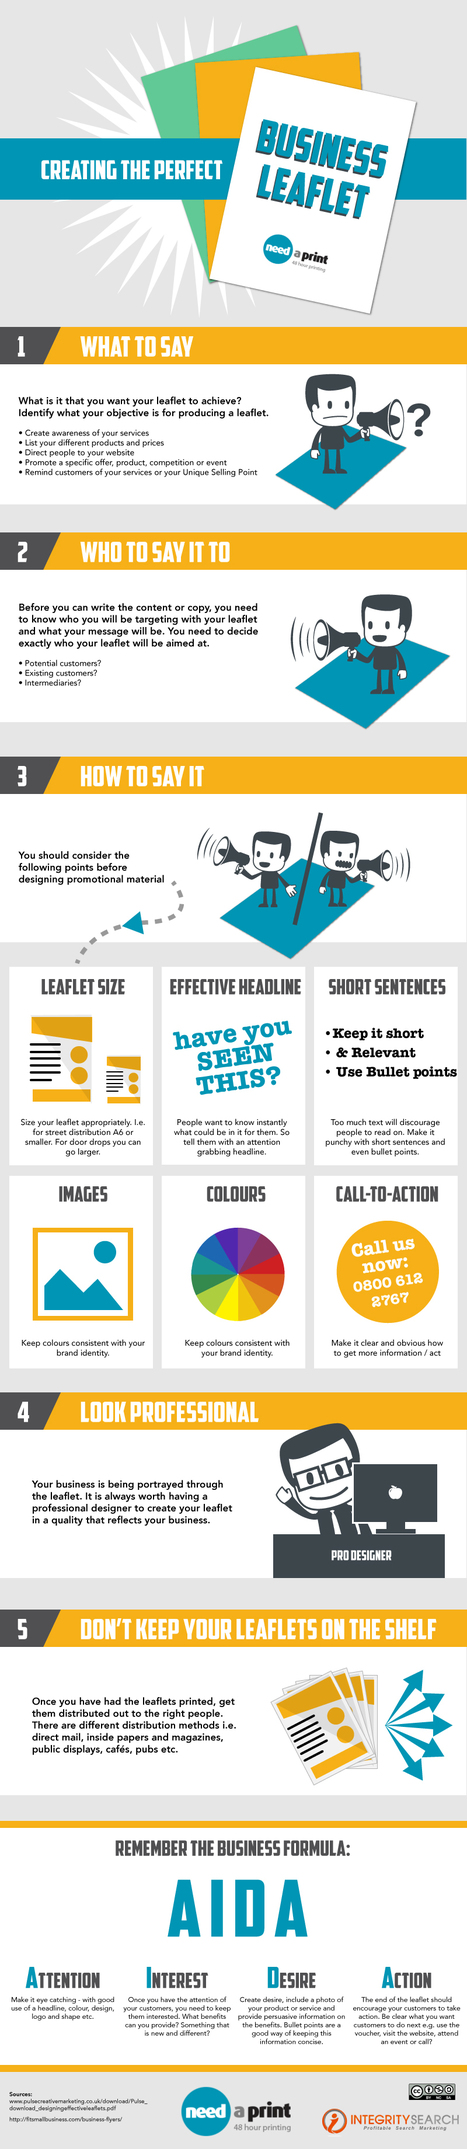 Creating The Perfect Business Leaflet | Asistencia Virtual PR | Scoop.it